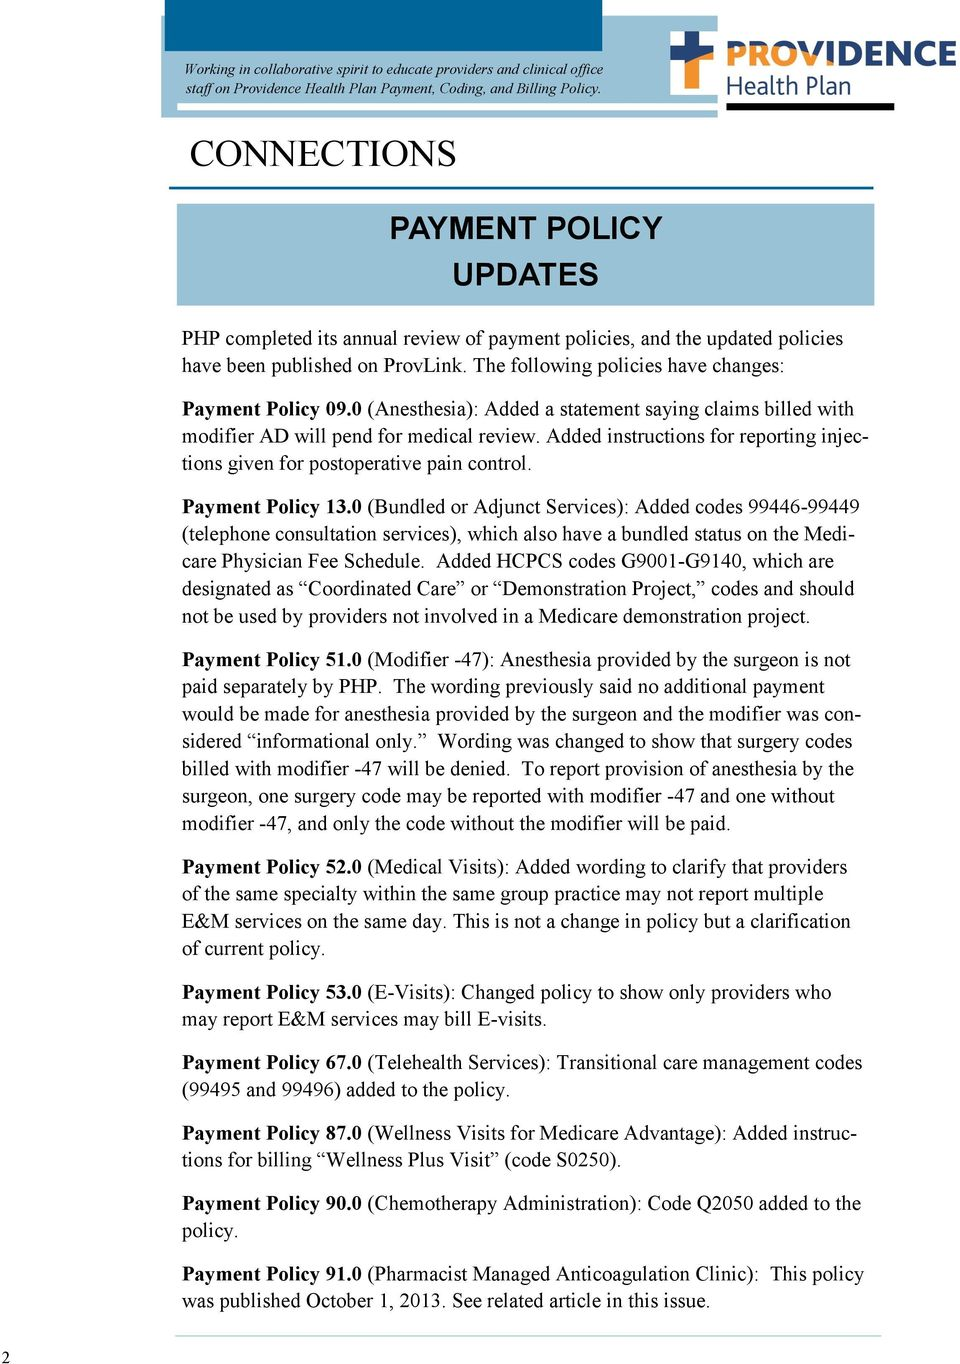 Payment Policy 13.0 (Bundled or Adjunct Services): Added codes 99446-99449 (telephone consultation services), which also have a bundled status on the Medicare Physician Fee Schedule.